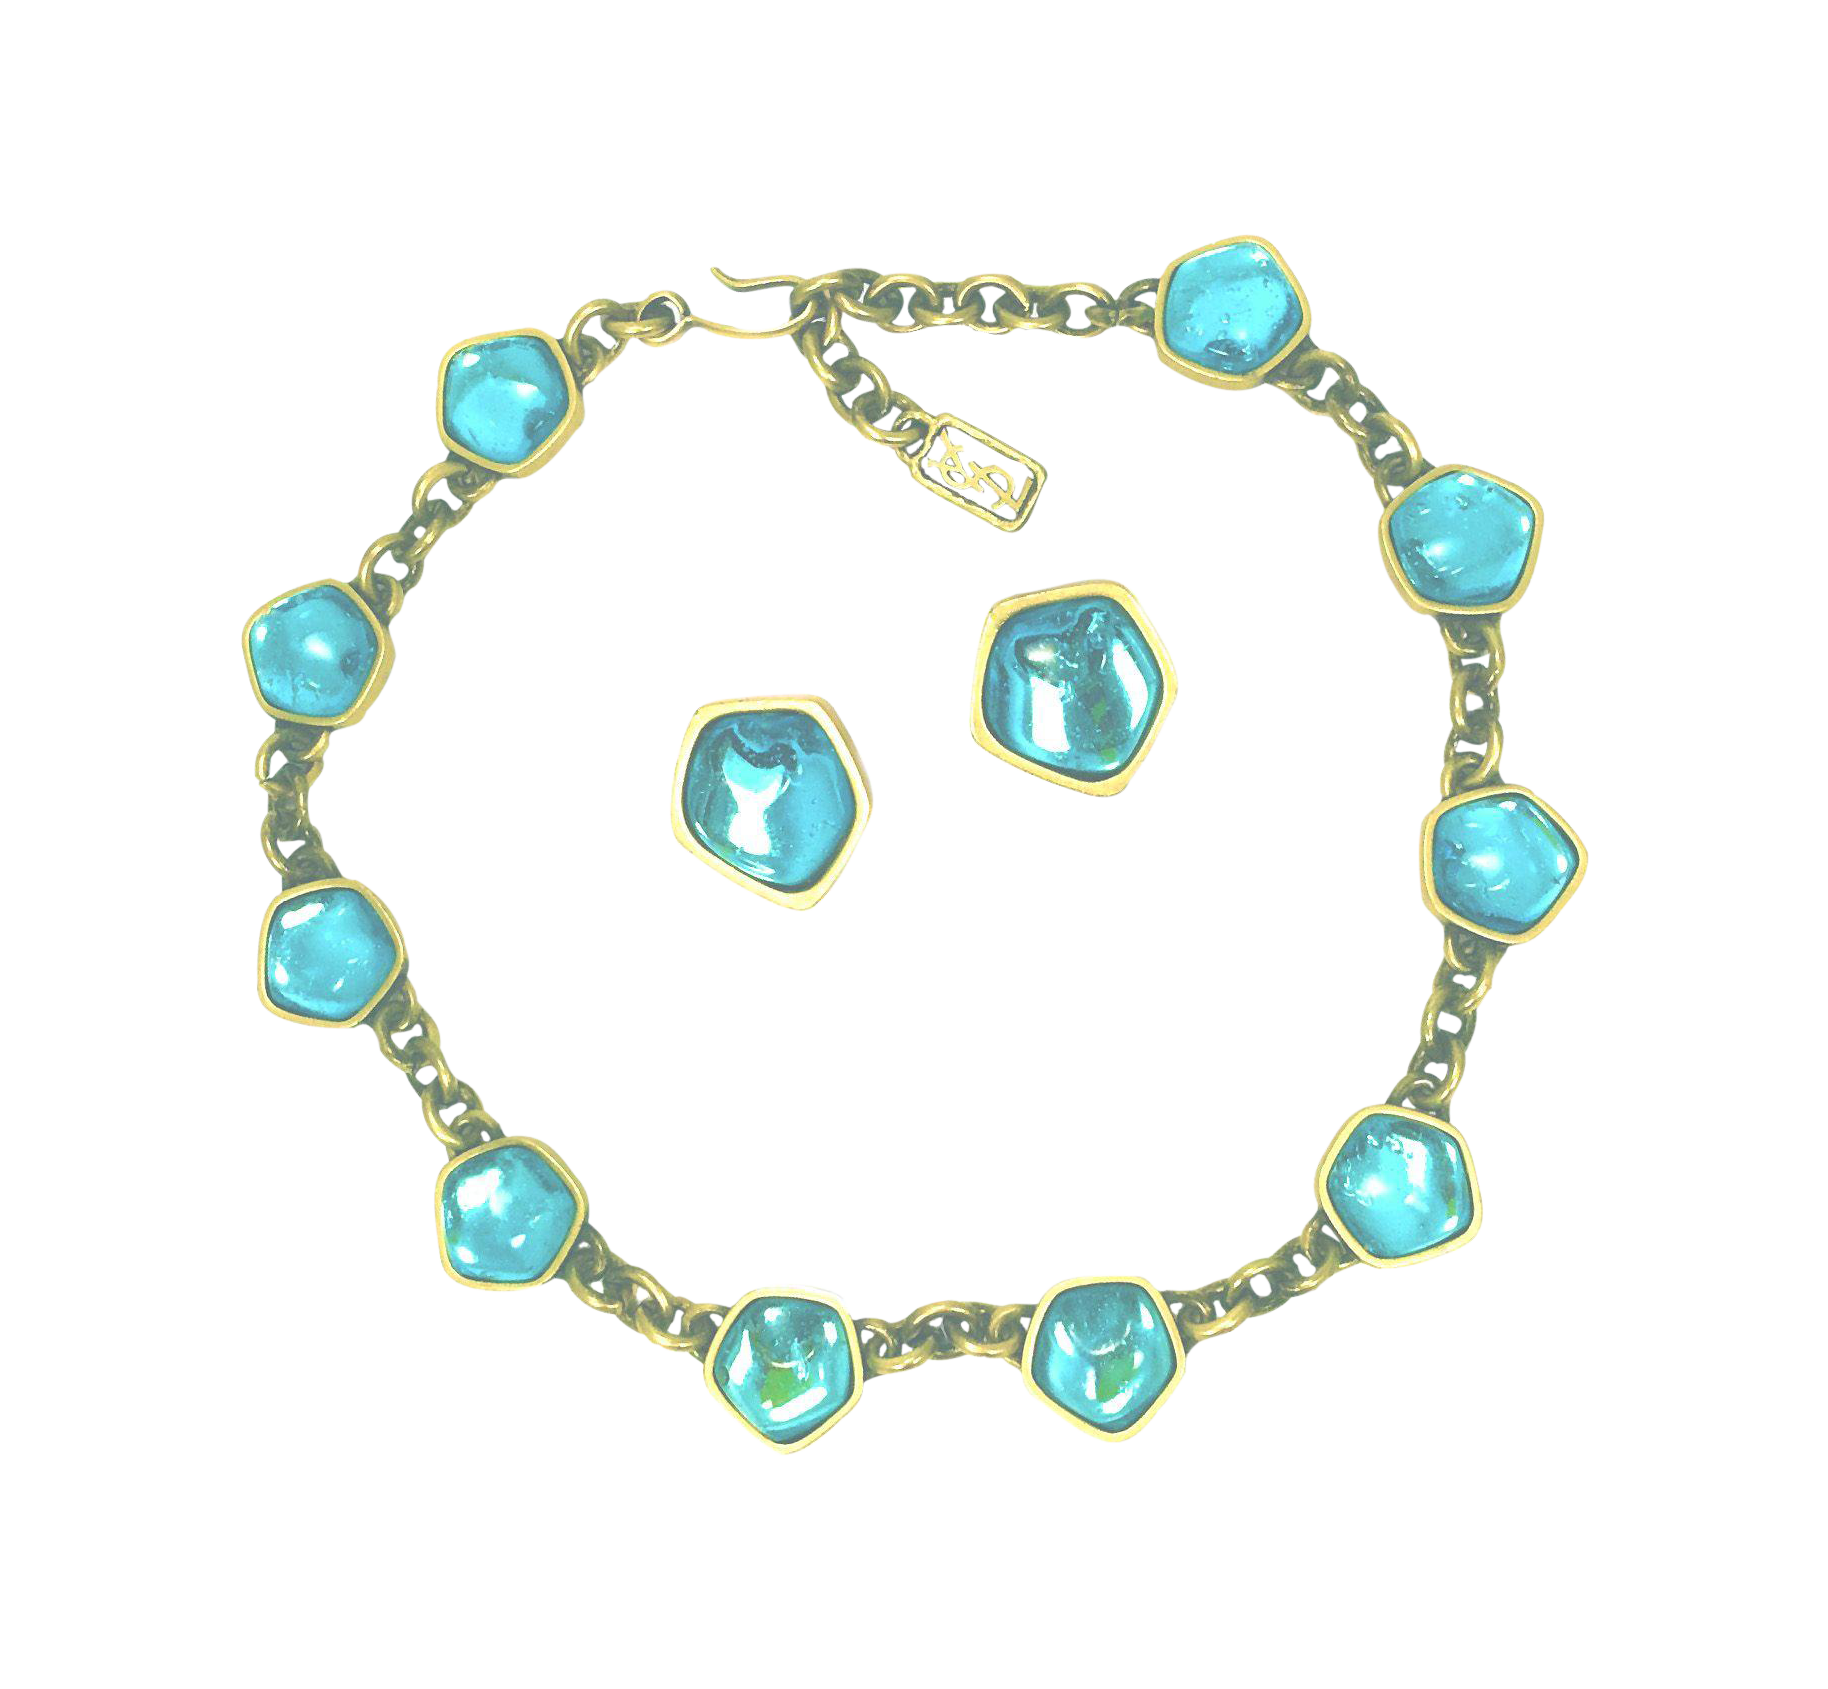 YSL Poured Glass Necklace u Earrings Vintage Couture Jewelry